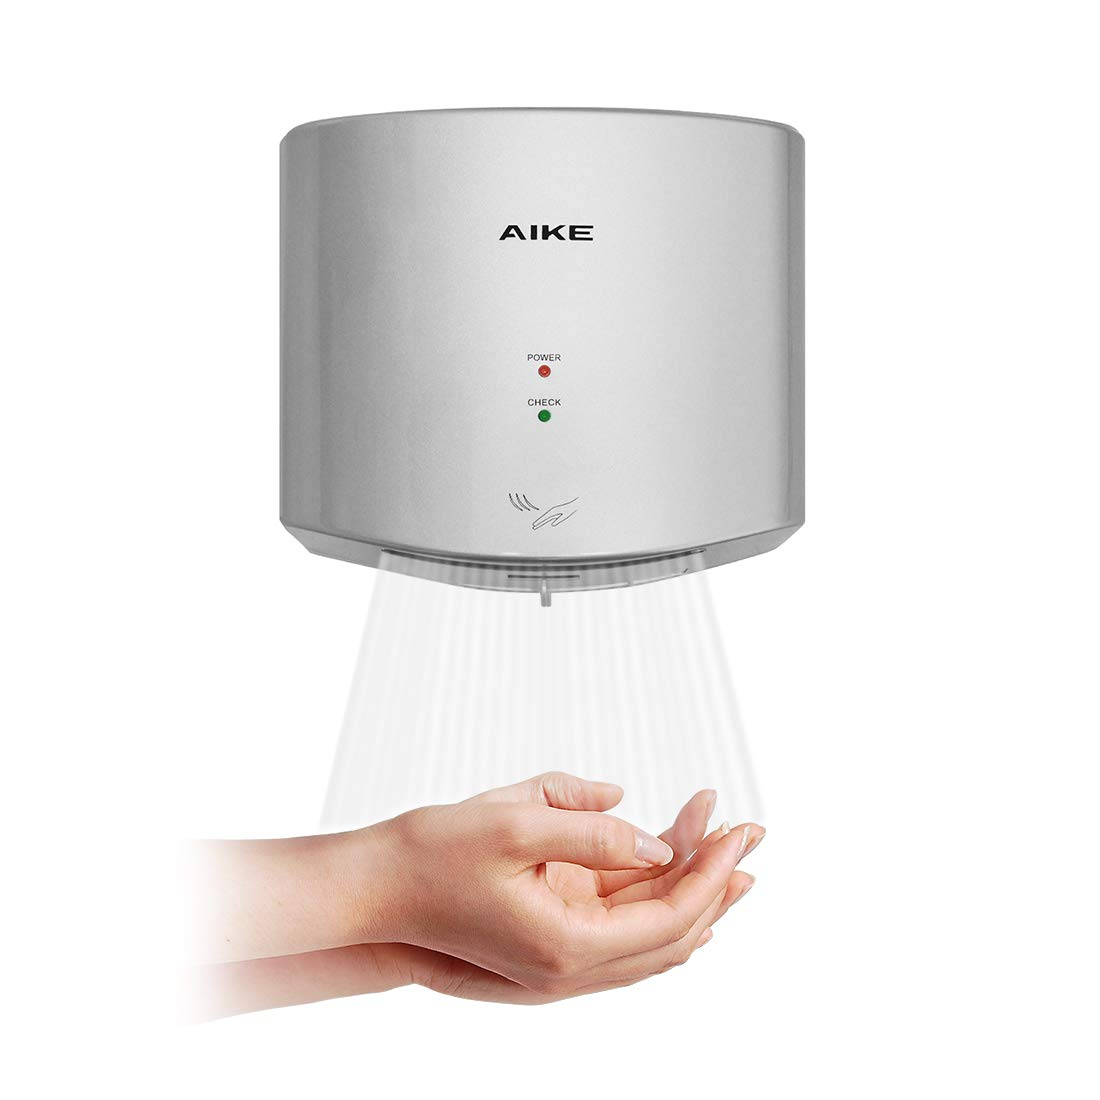 AIKE AK2630 K Automatic Commercial Household